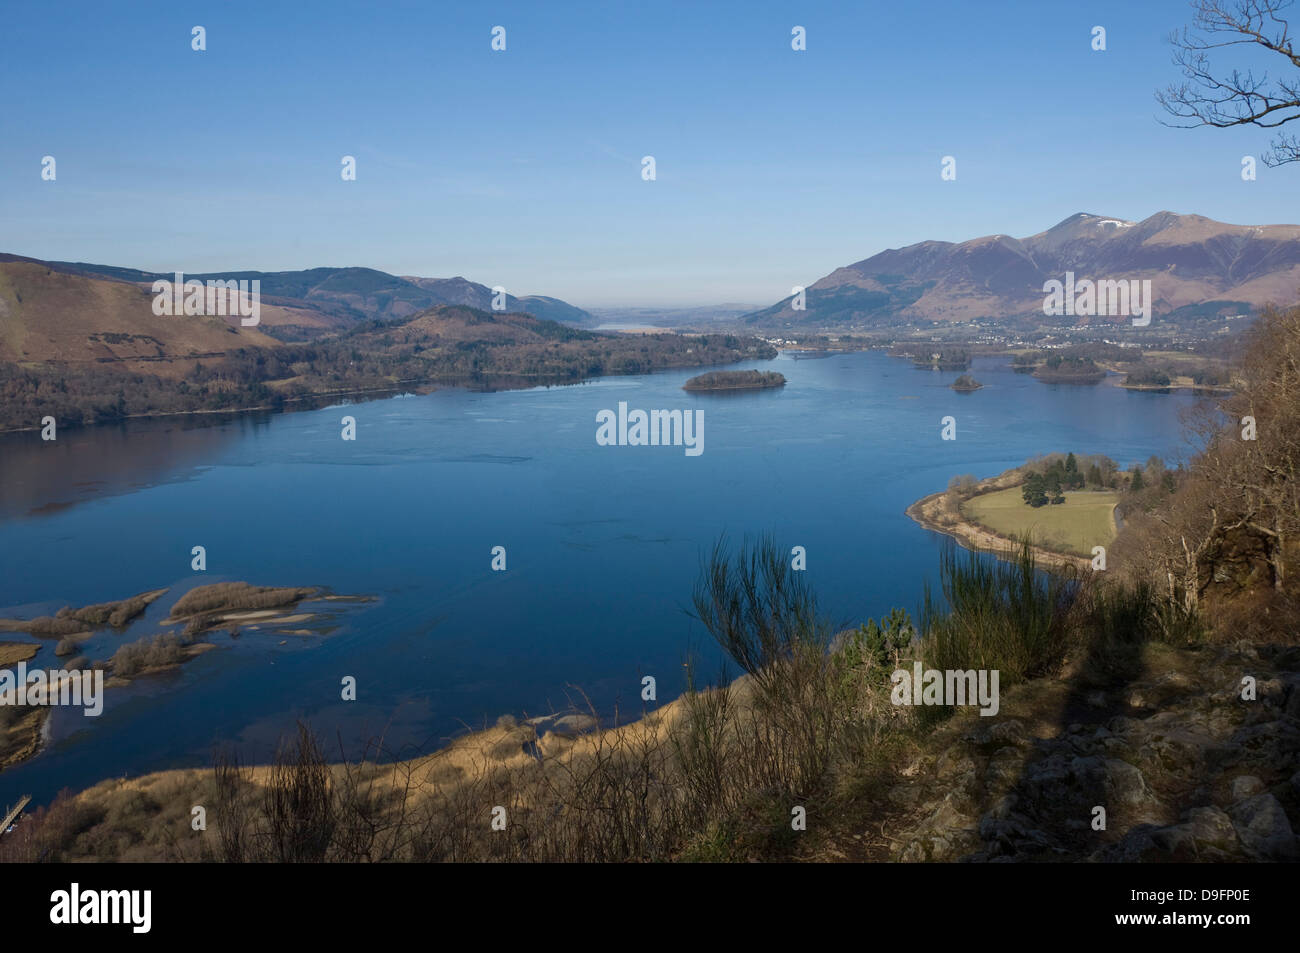 Derwent Water, Keswick, and Skiddaw Fell, from Surprise View, Lake District National Park, Cumbria, England, UK - Stock Image